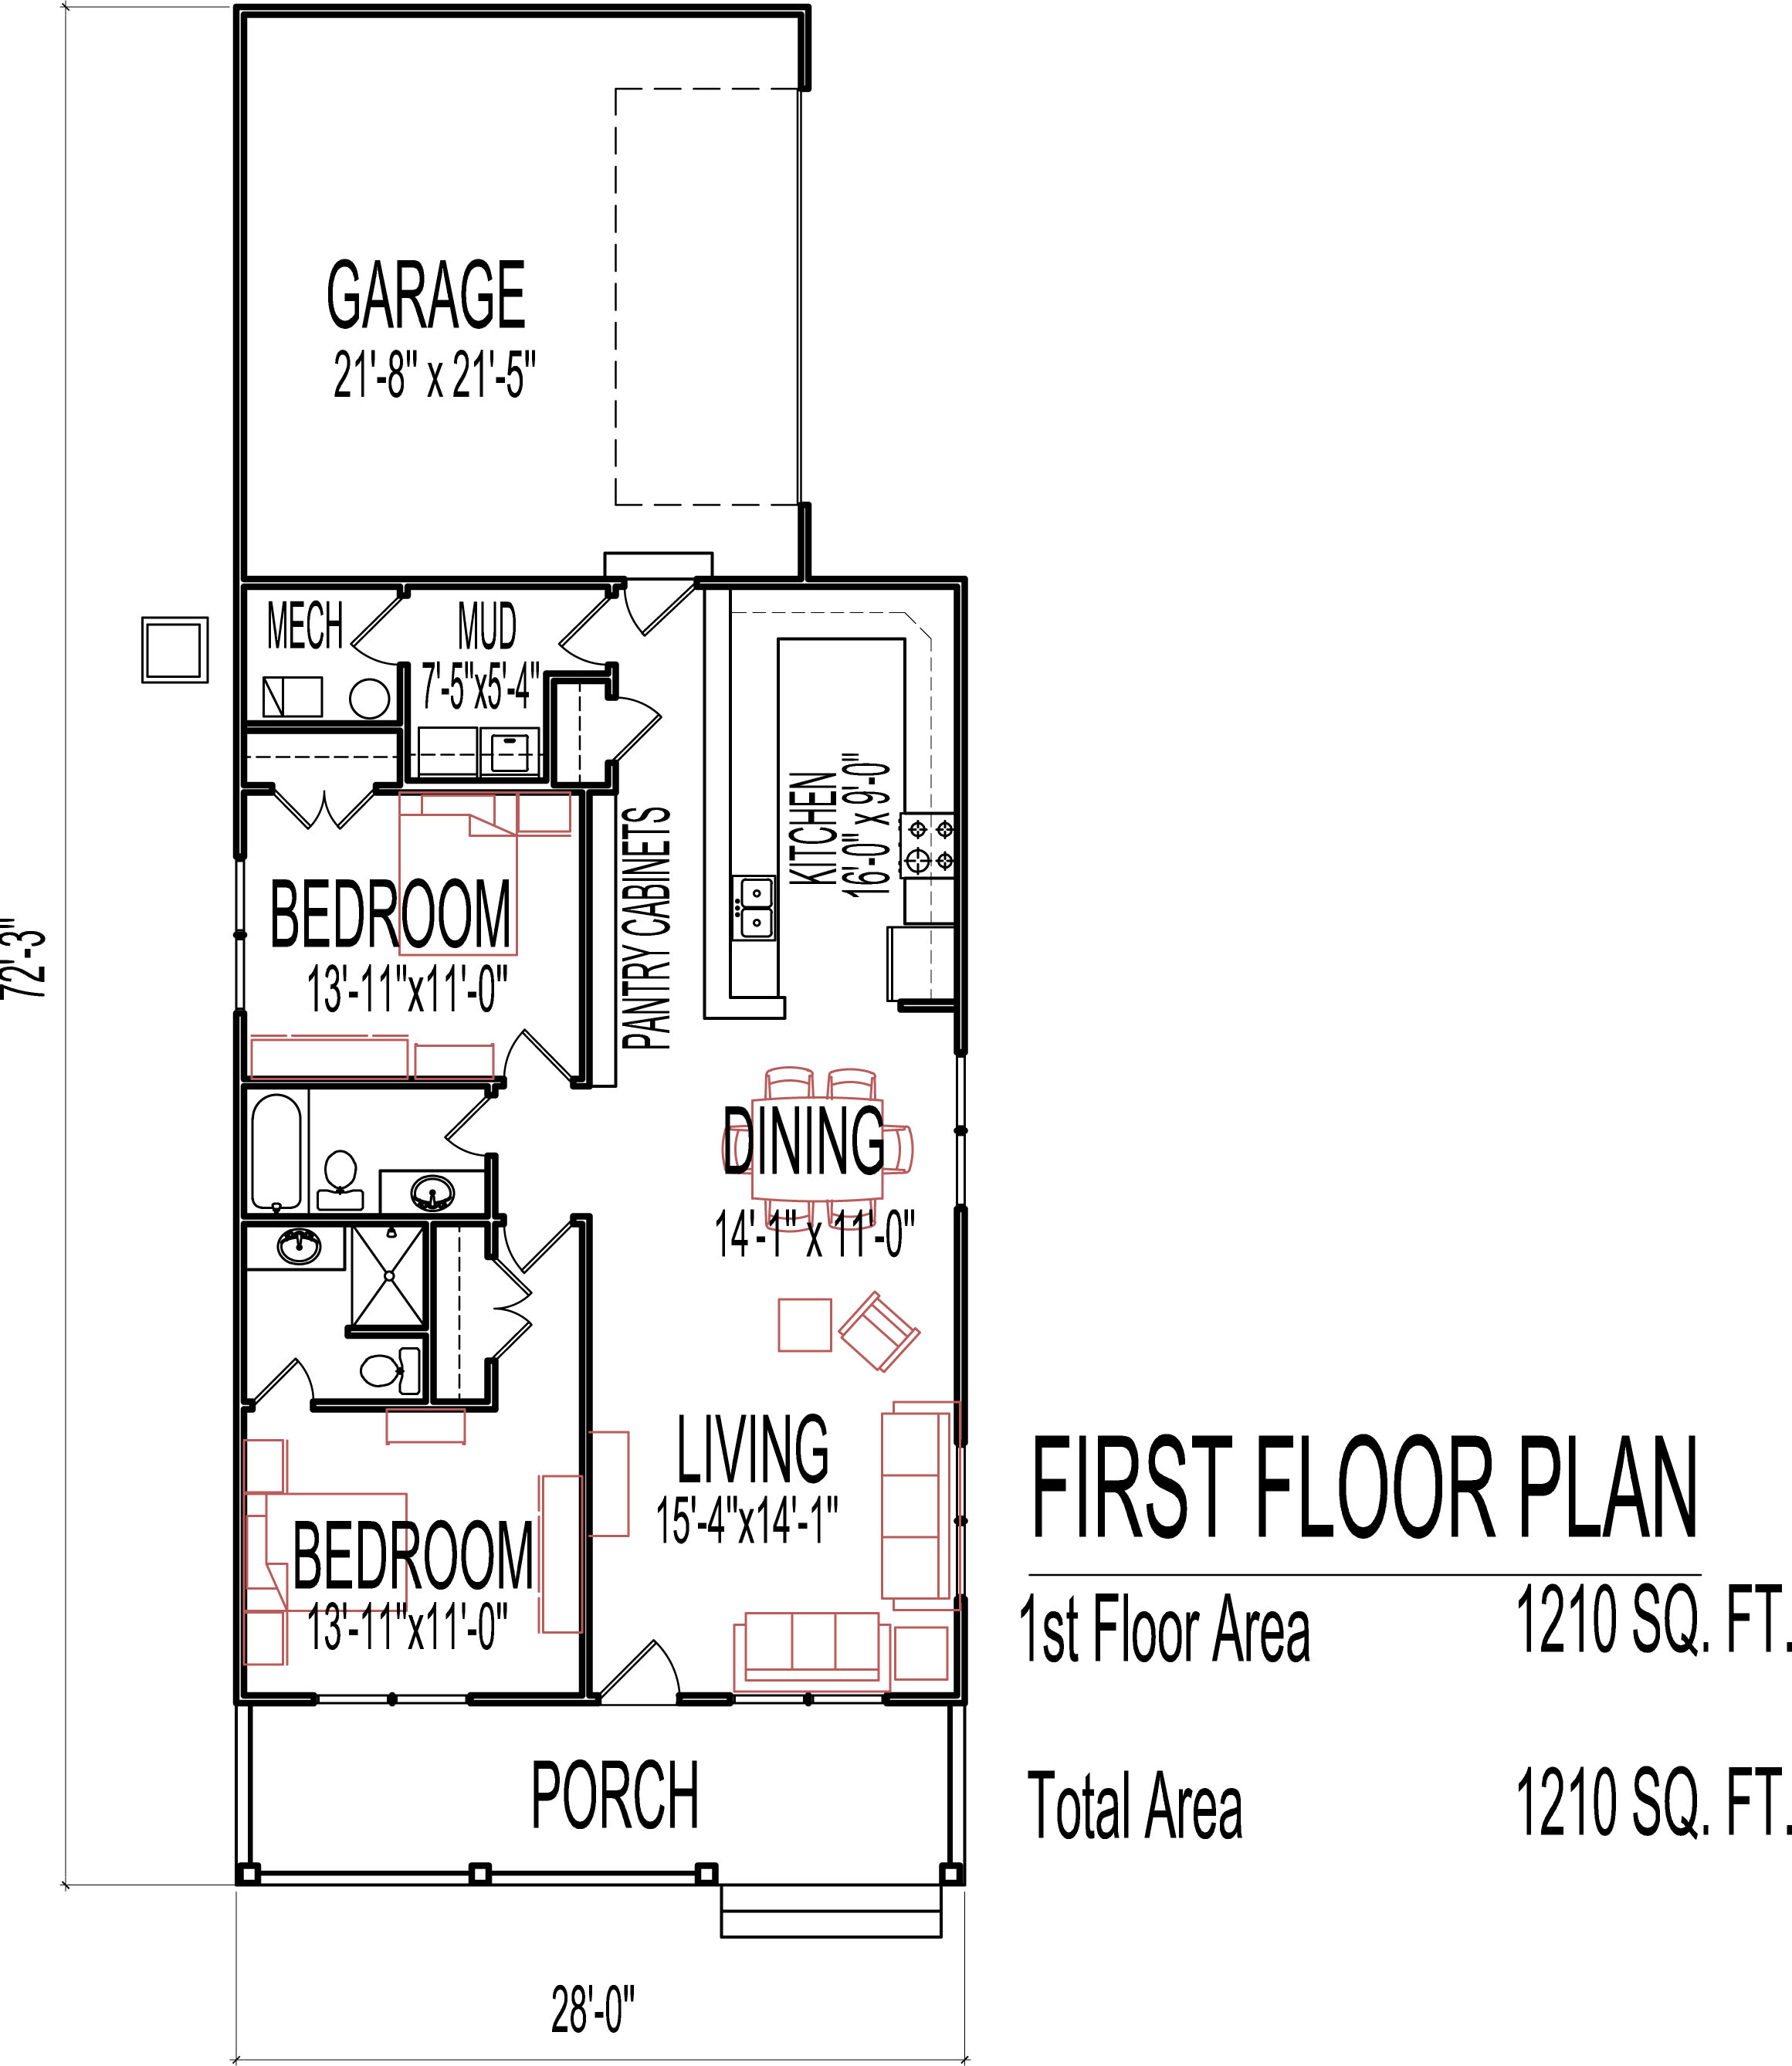 Small Two Bedroom House Plans Low Cost 1200 Sq Ft one Story – Small Two Story House Plans With Garage